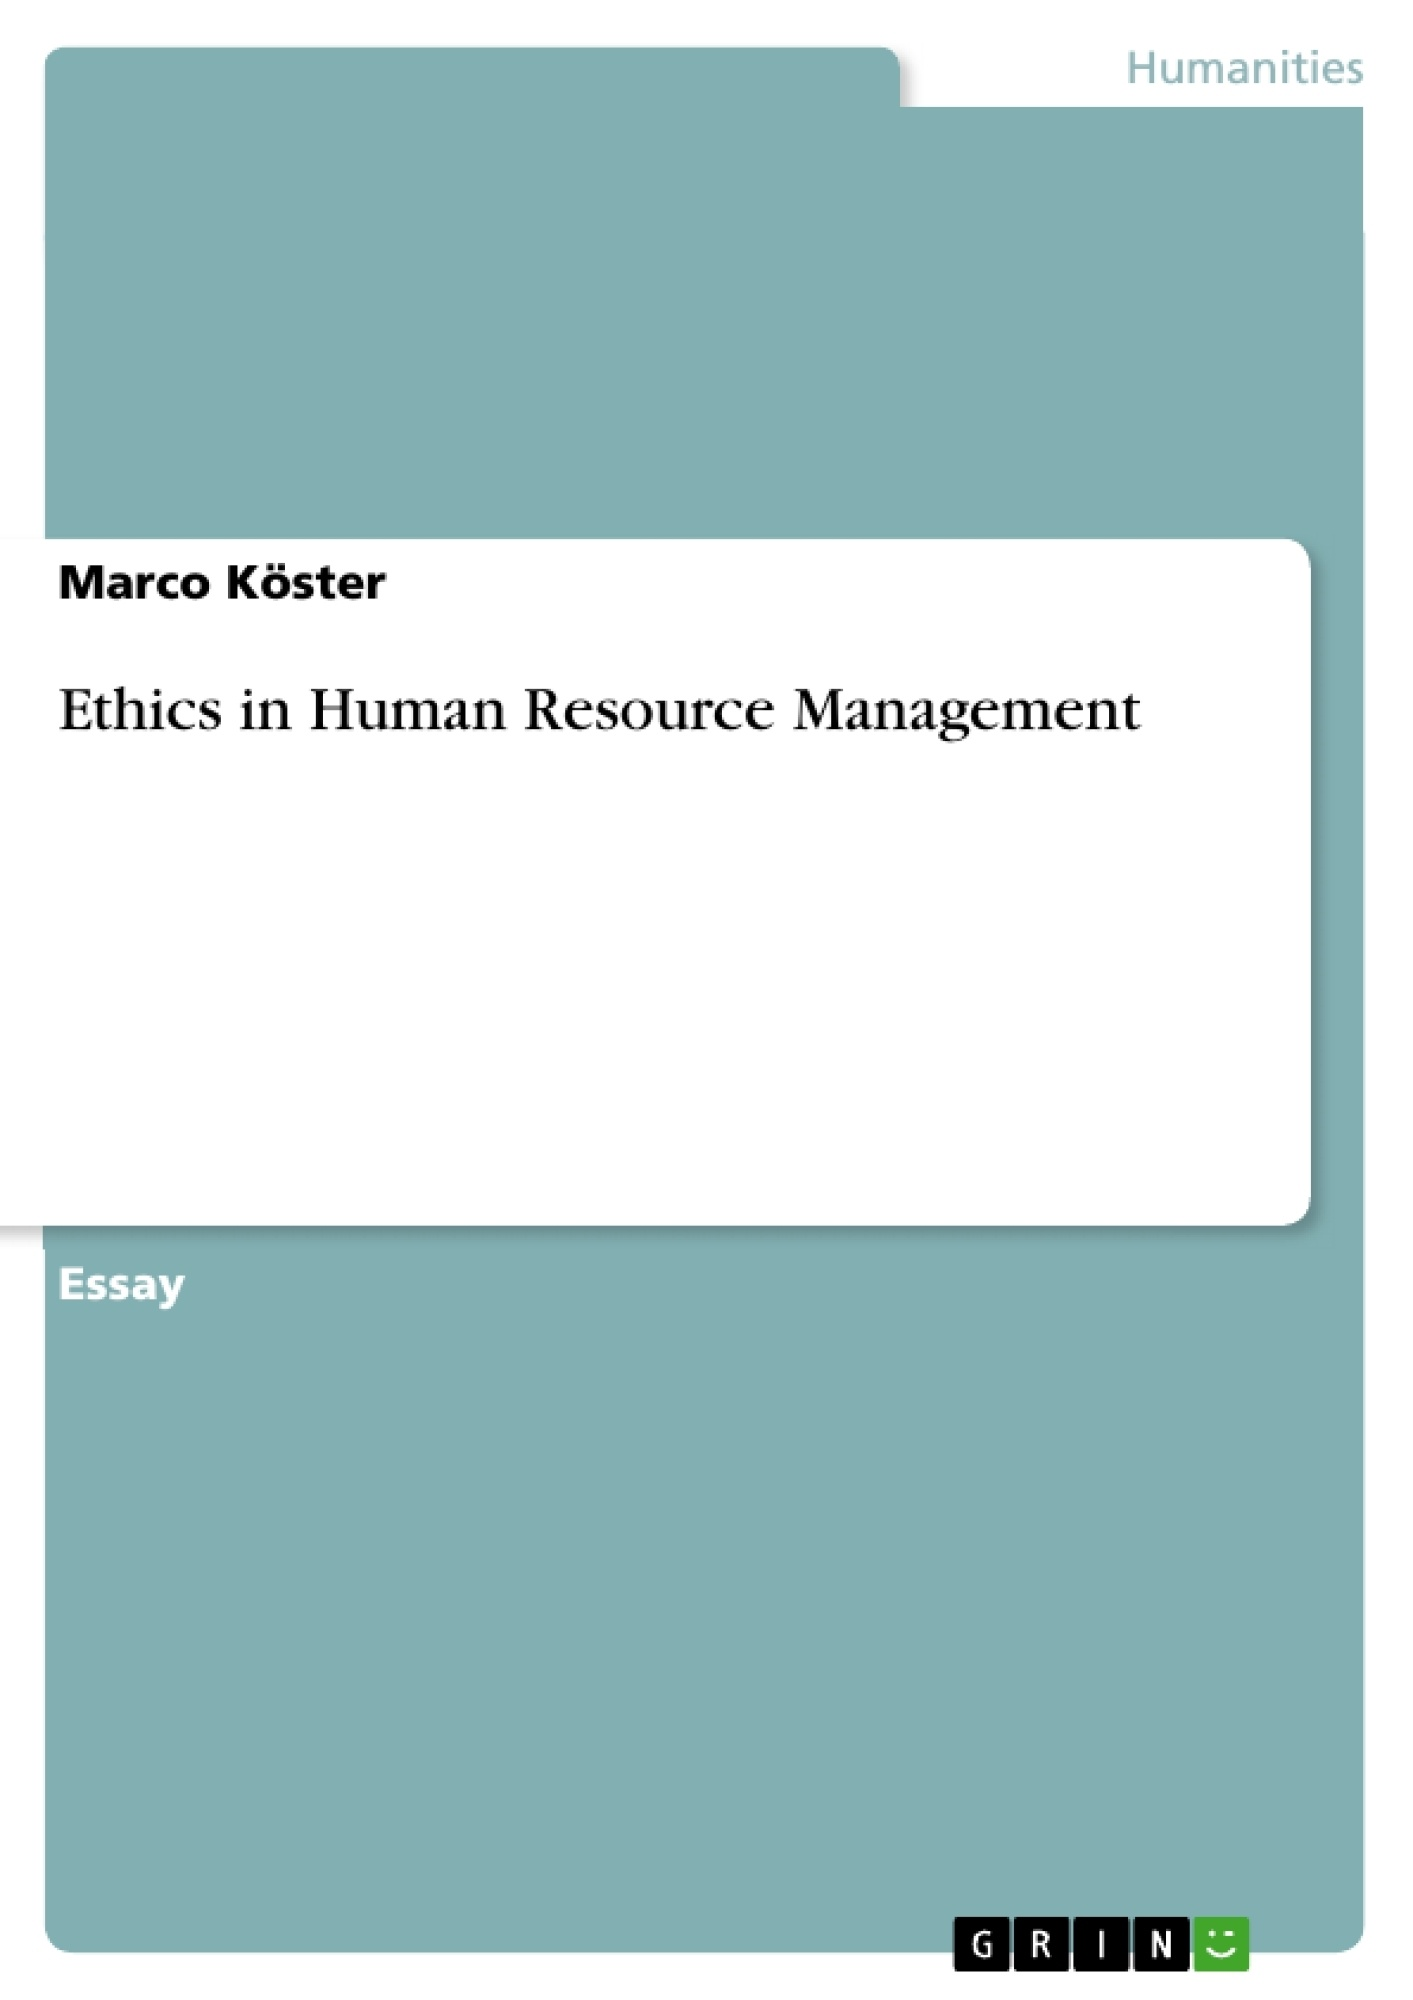 ethics in human resource management publish your master s thesis ethics in human resource management publish your master s thesis bachelor s thesis essay or term paper